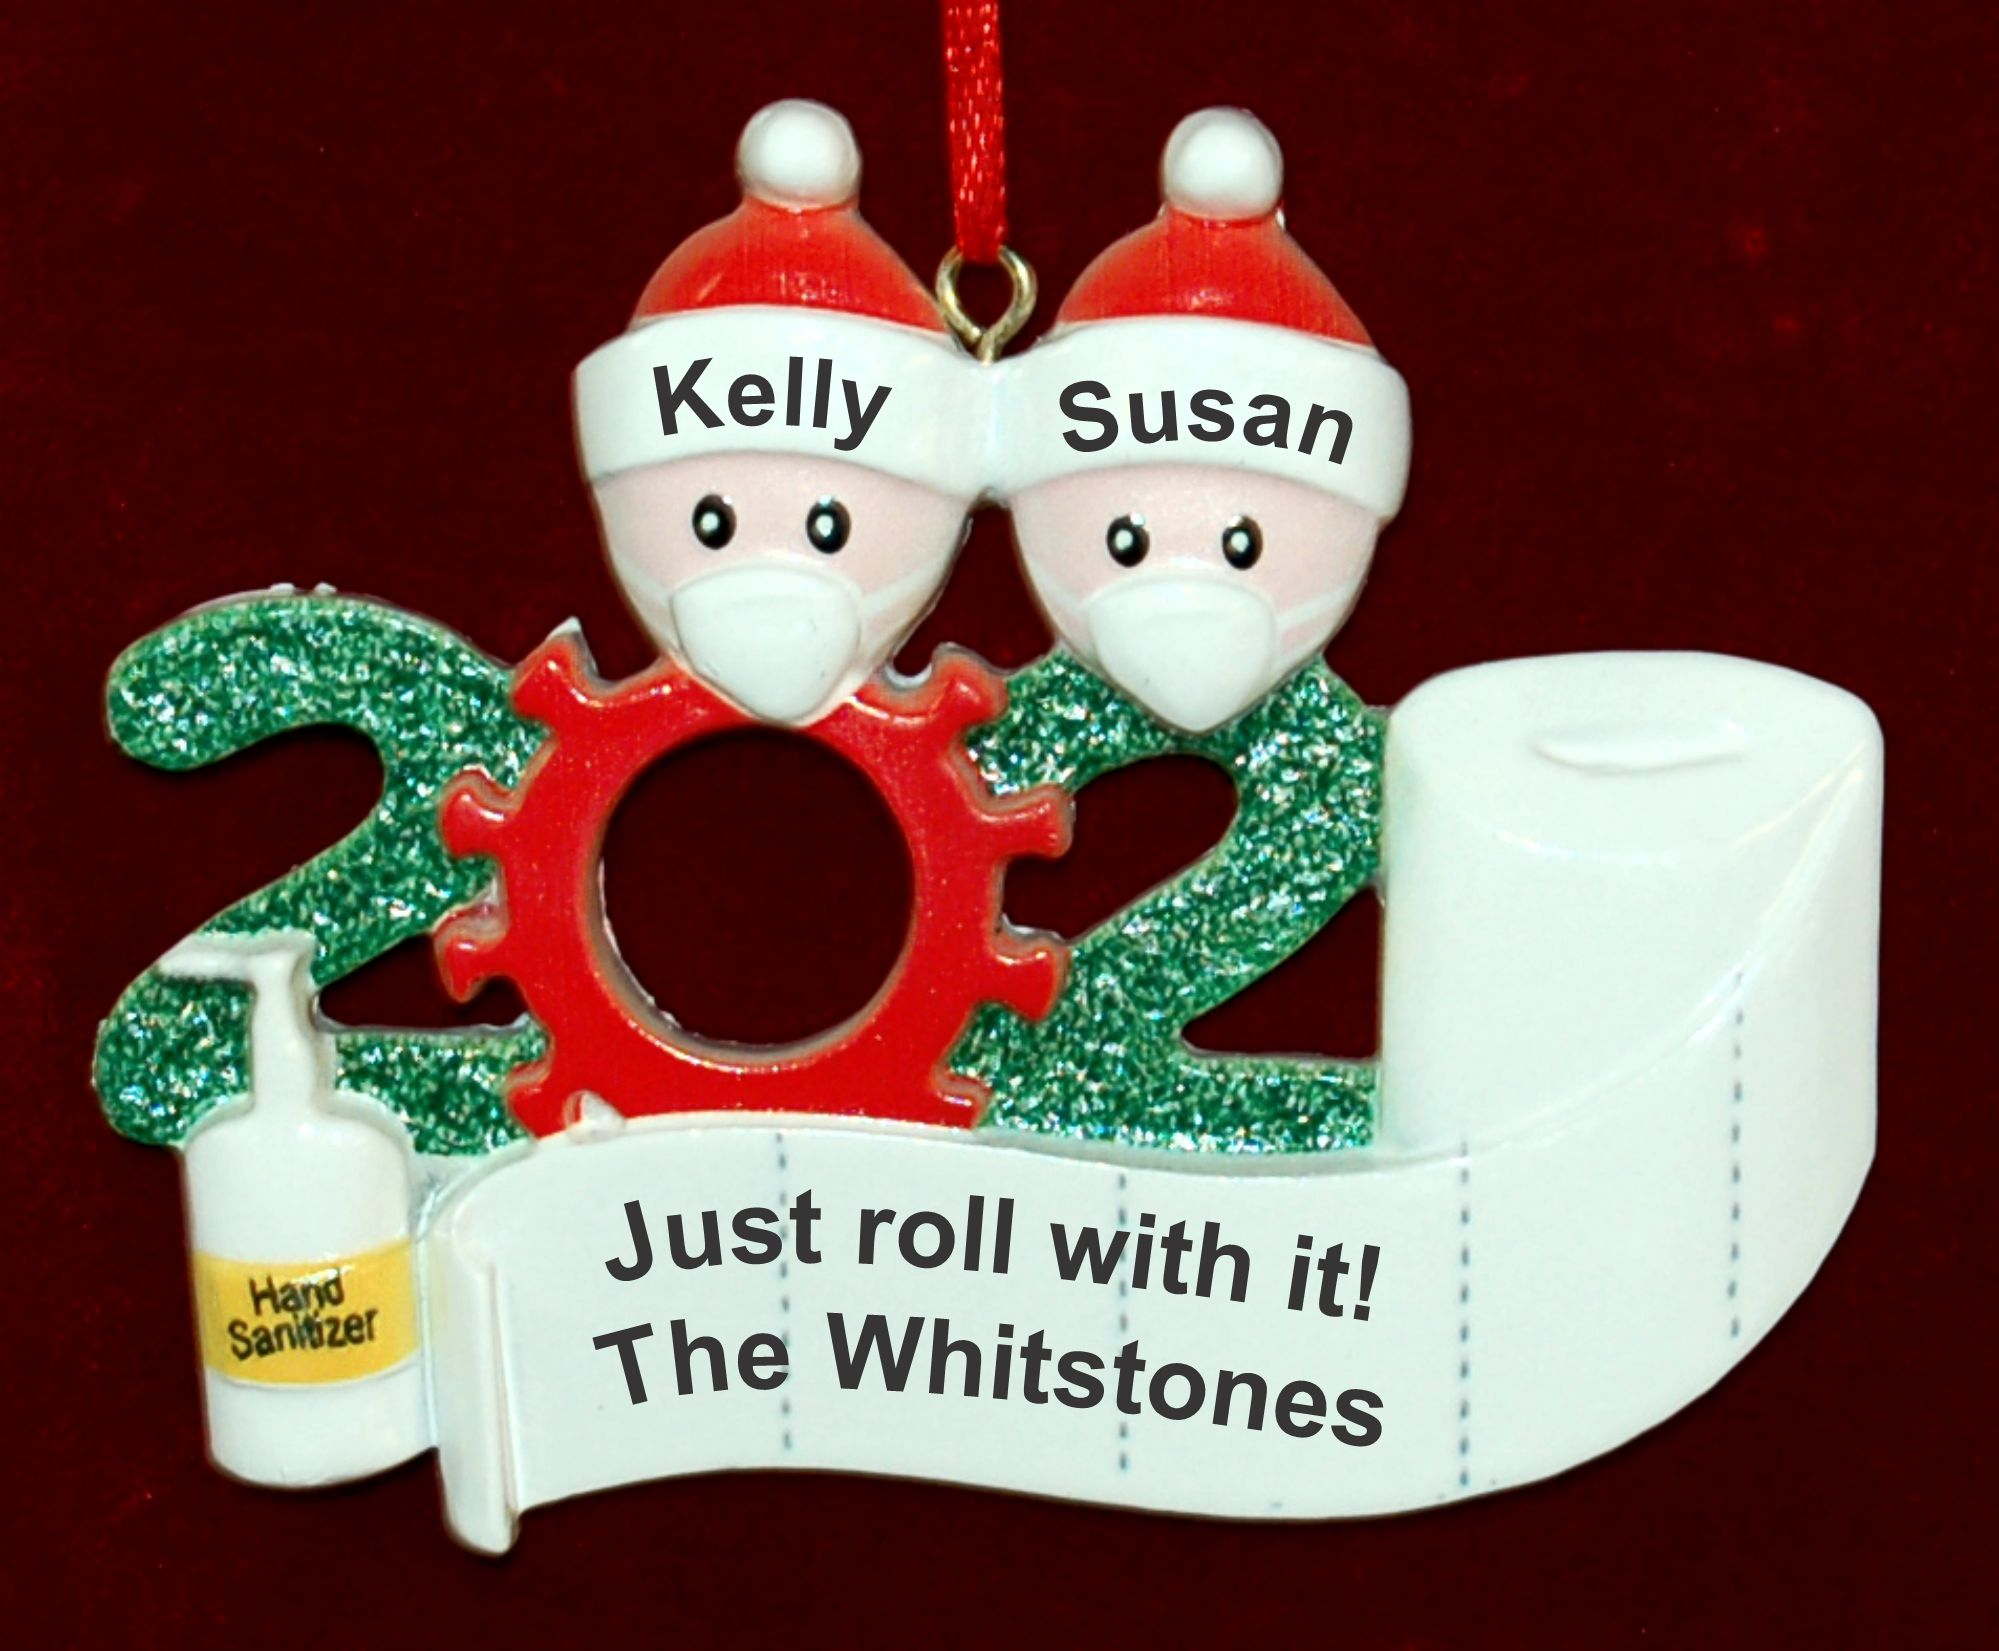 Personalized Pandemic Christmas Ornament Rolling with it for 2 Personalized FREE by Russell Rhodes